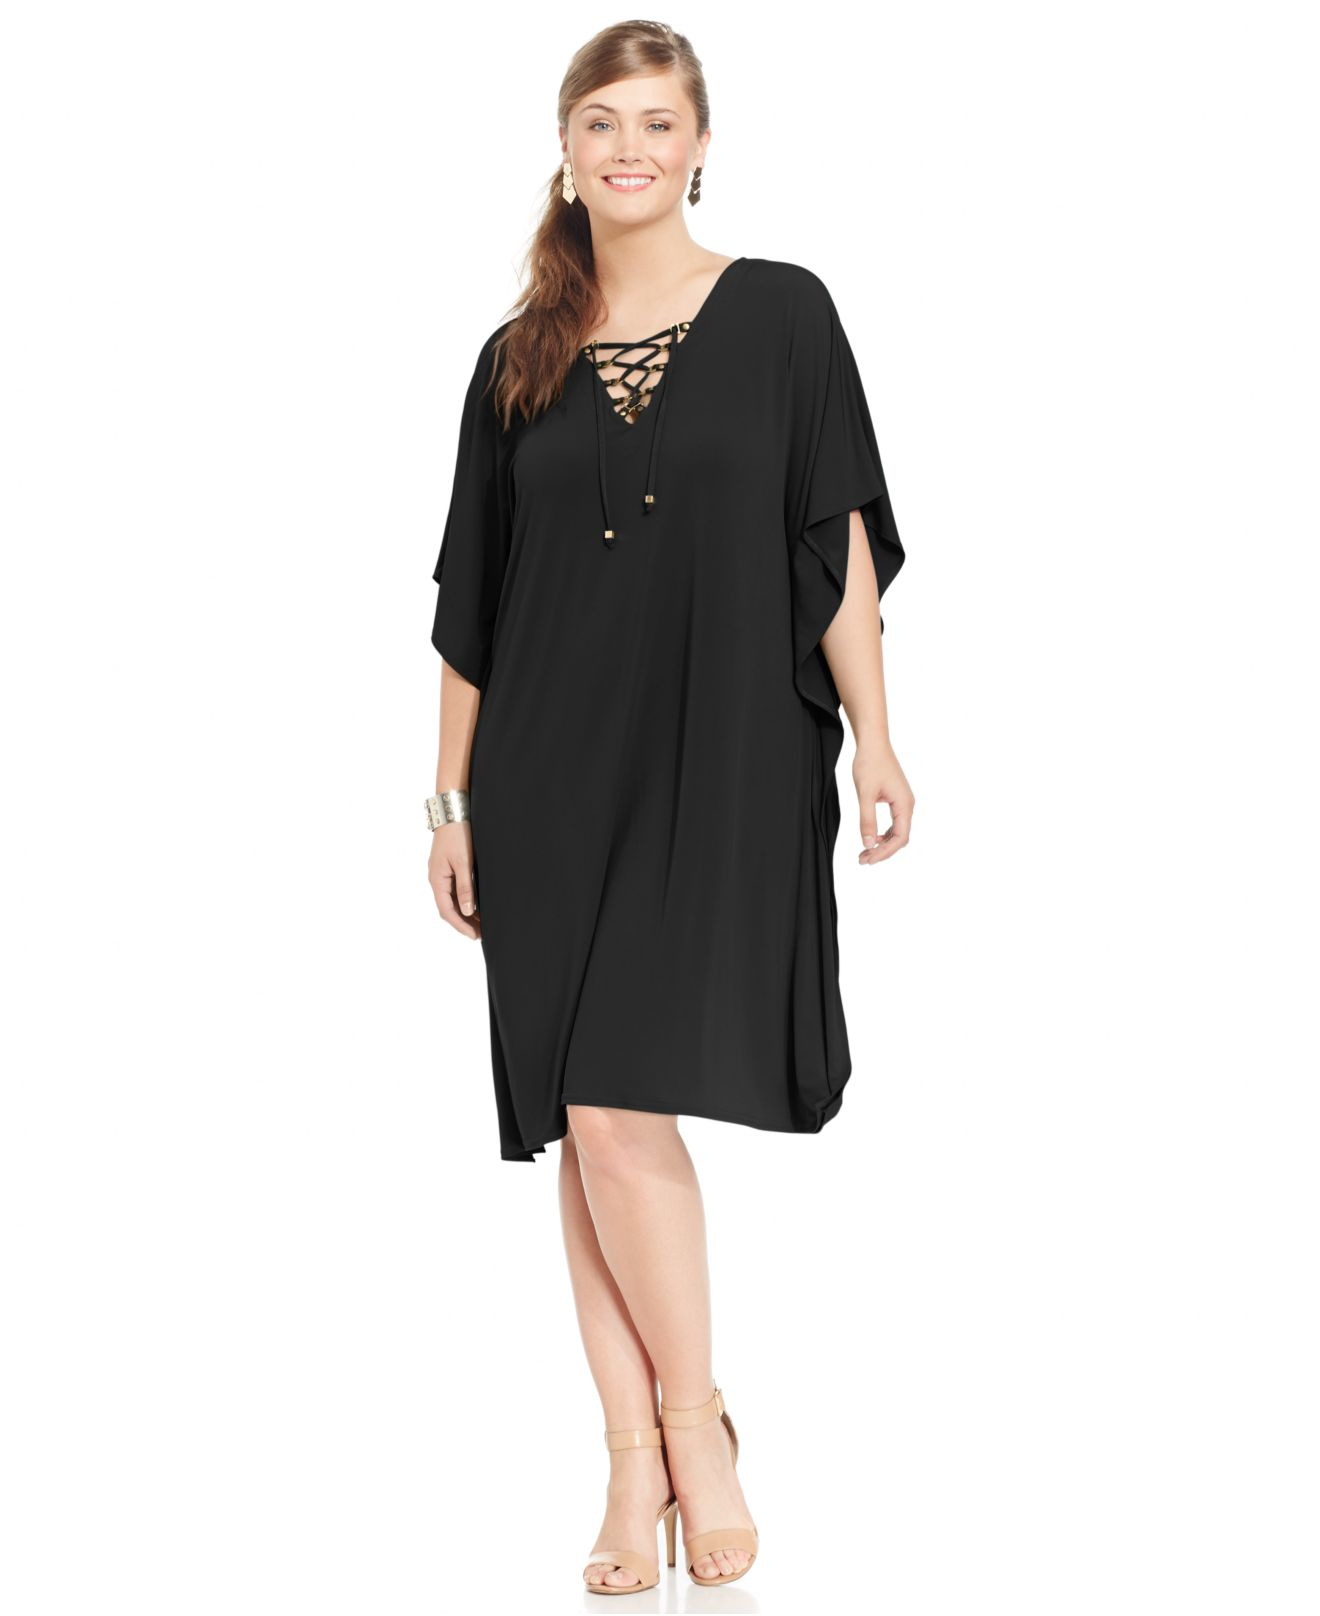 caad93d26f5 Lyst - Spense Plus Size Butterfly-sleeve Lace-up Shift Dress in Black